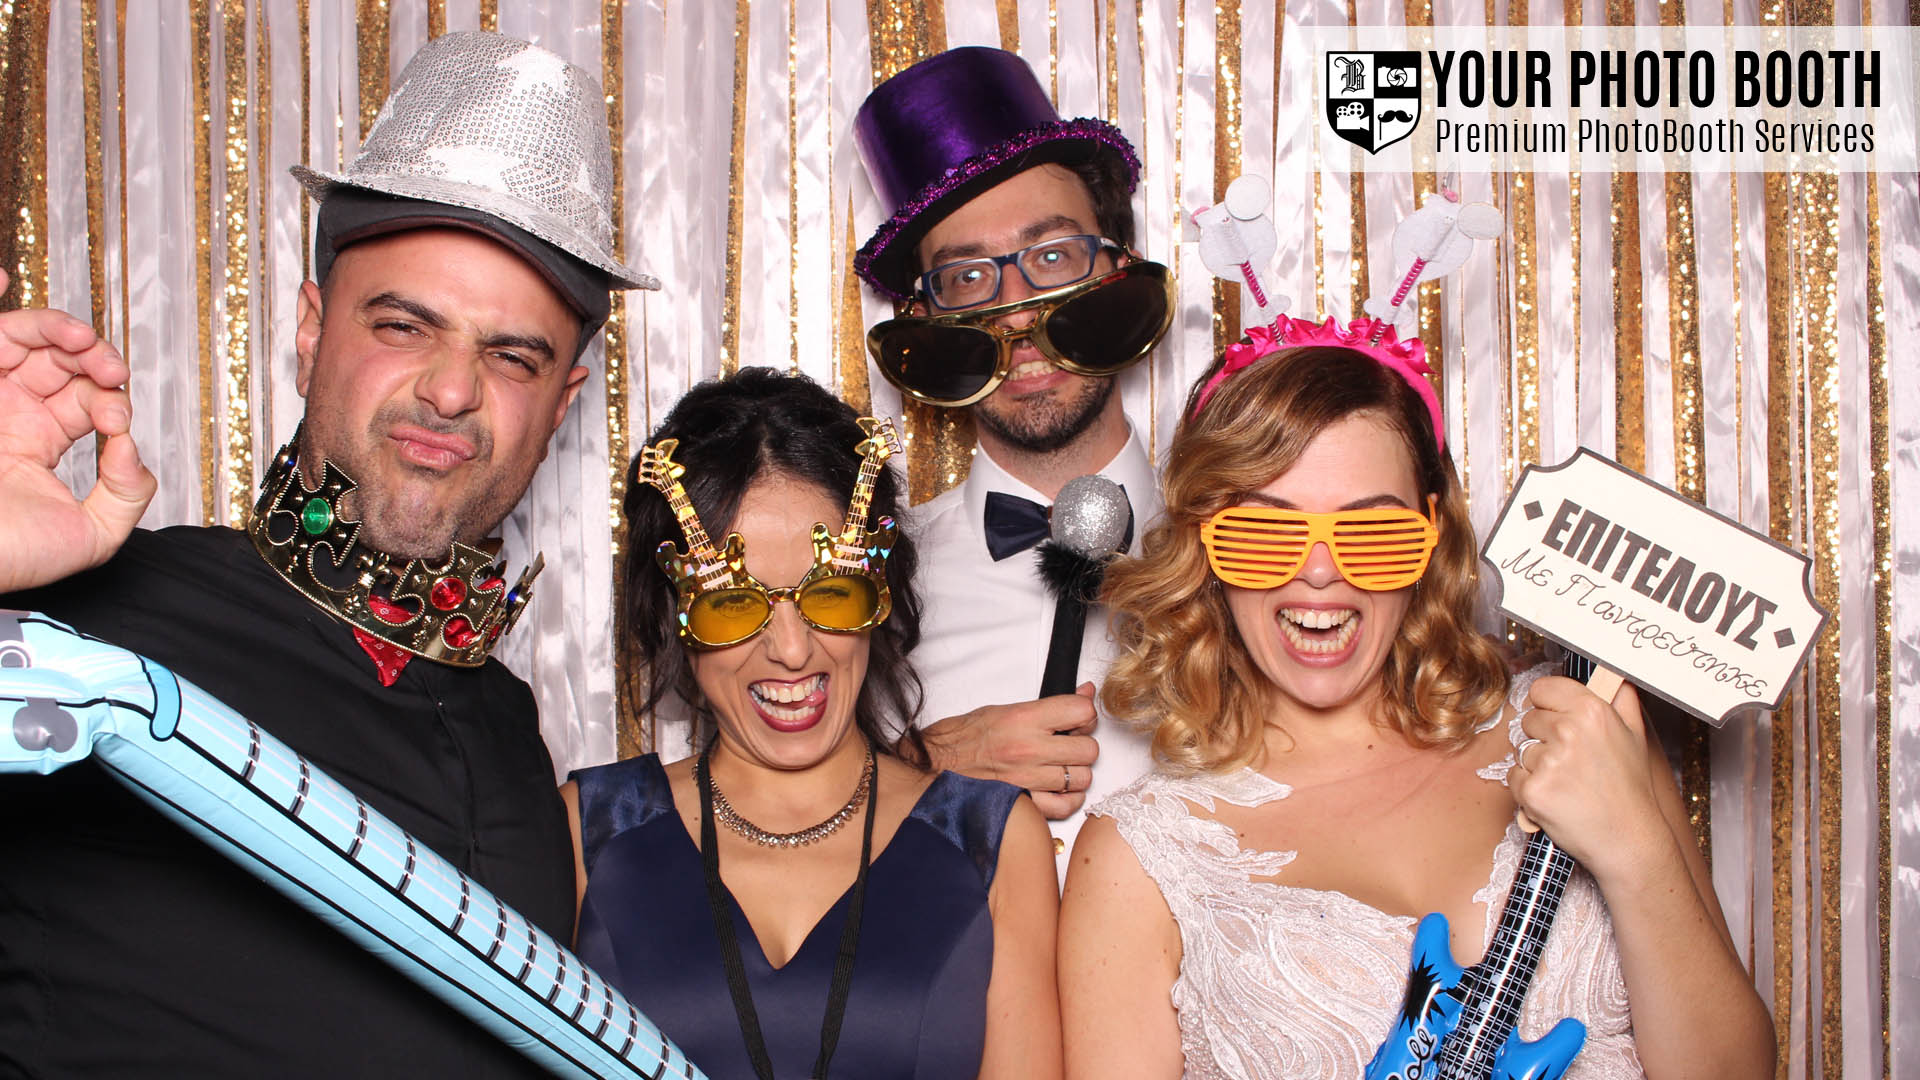 Your Photo Booth - Δημήτρης Κιοσσές, Photobooth